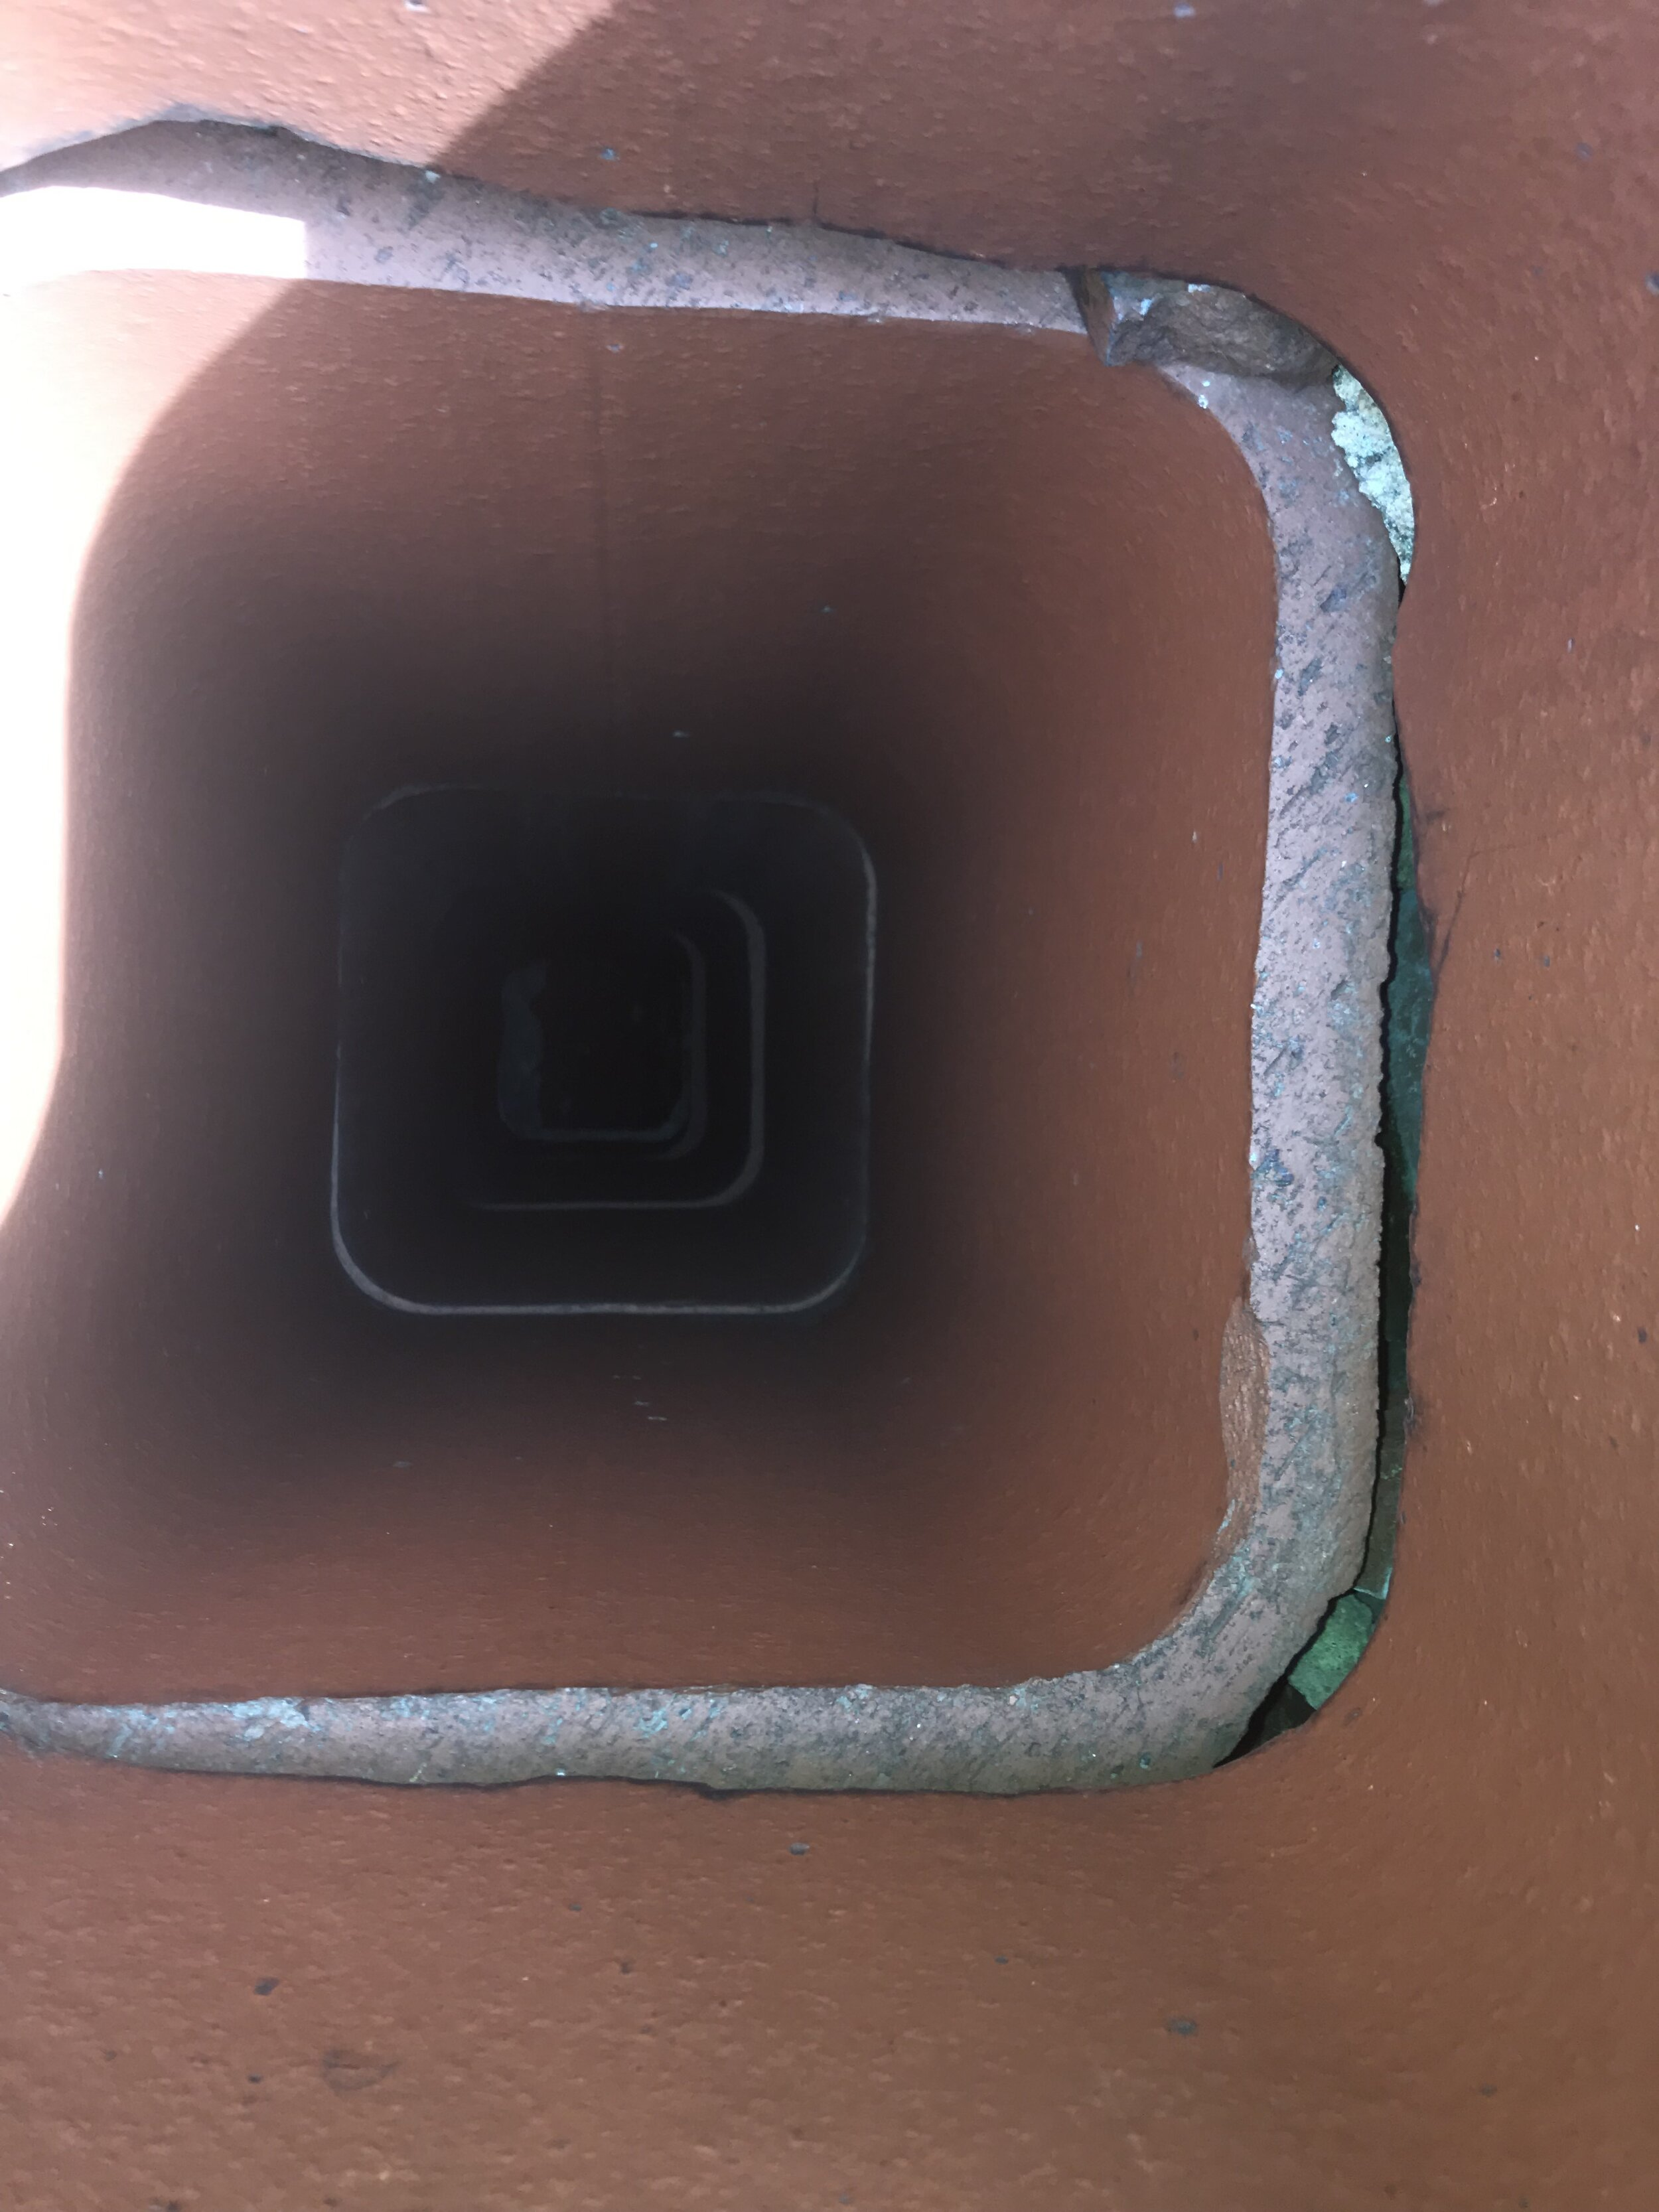 Clean flue, but gap between liners. Allows product of combustion to escape.jpg